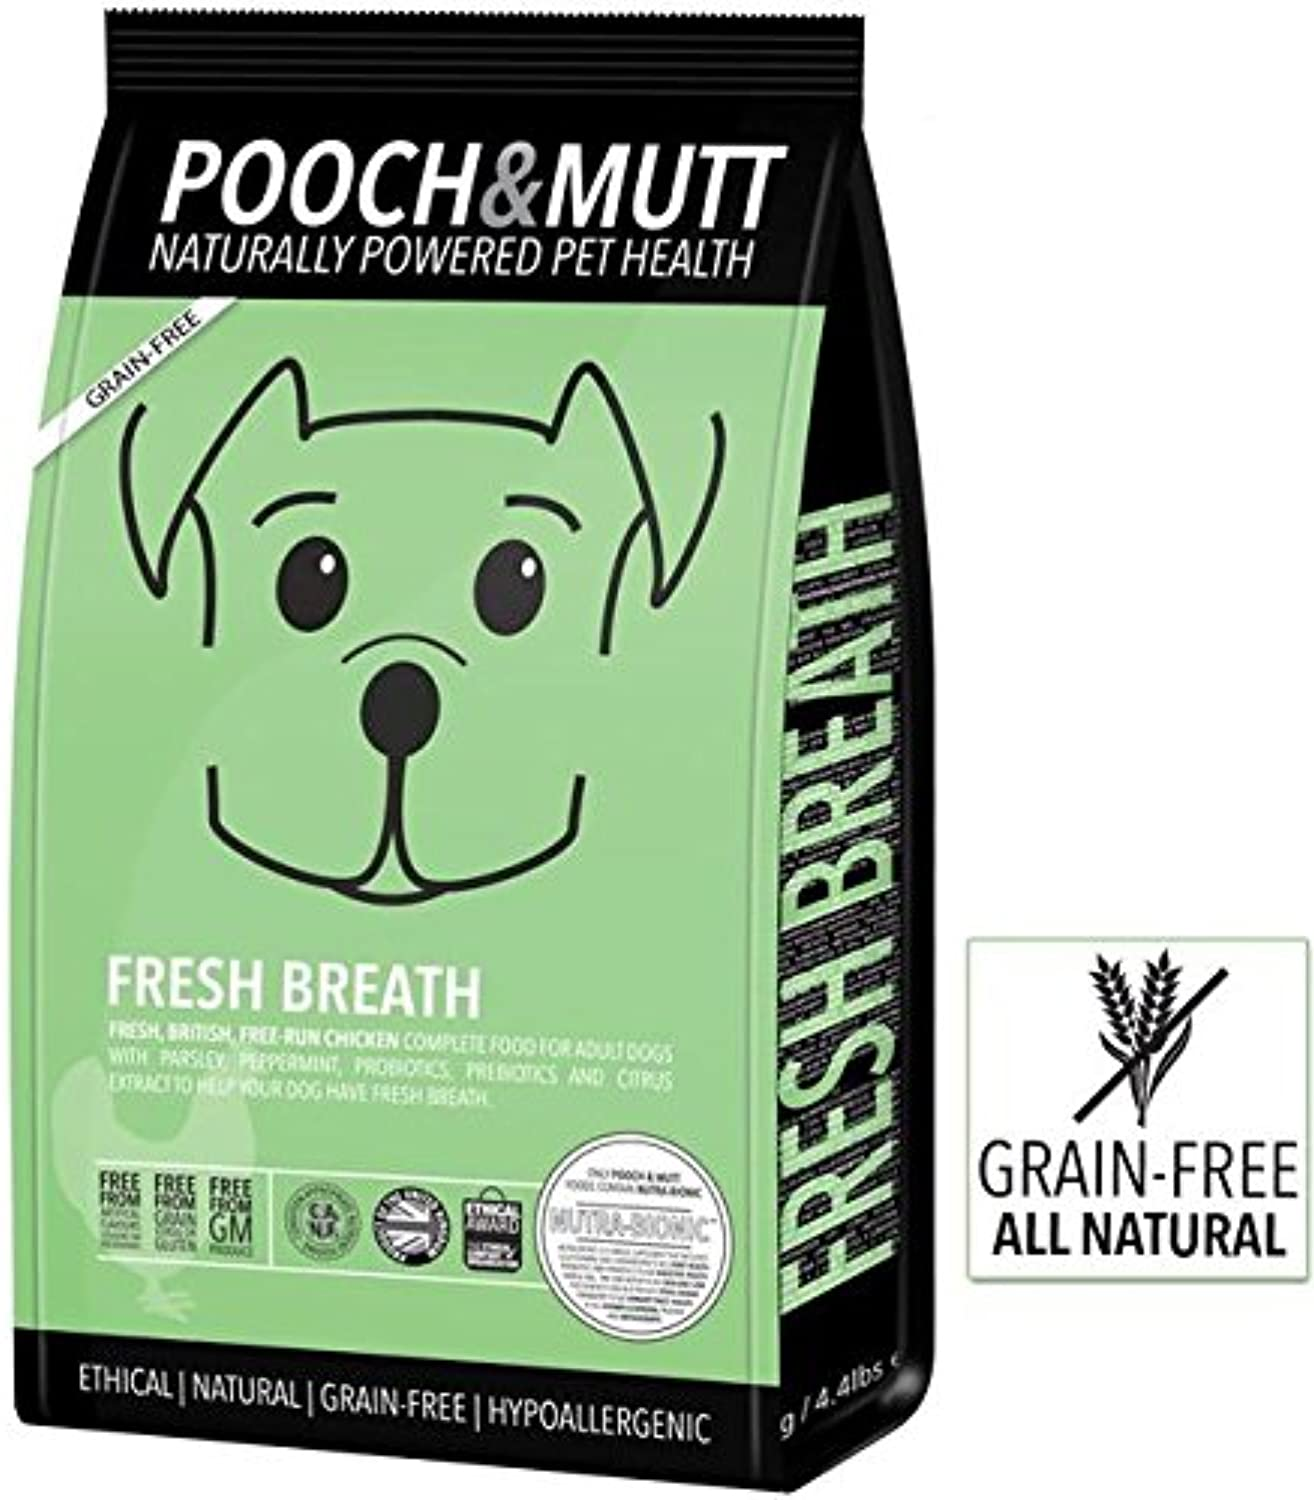 Pooch and Mutt Fresh Breath food a Complete Dry Grainfree food, bulk purchase 4 x 2kg bags that promotes breath freshness, oral hygiene and digestion